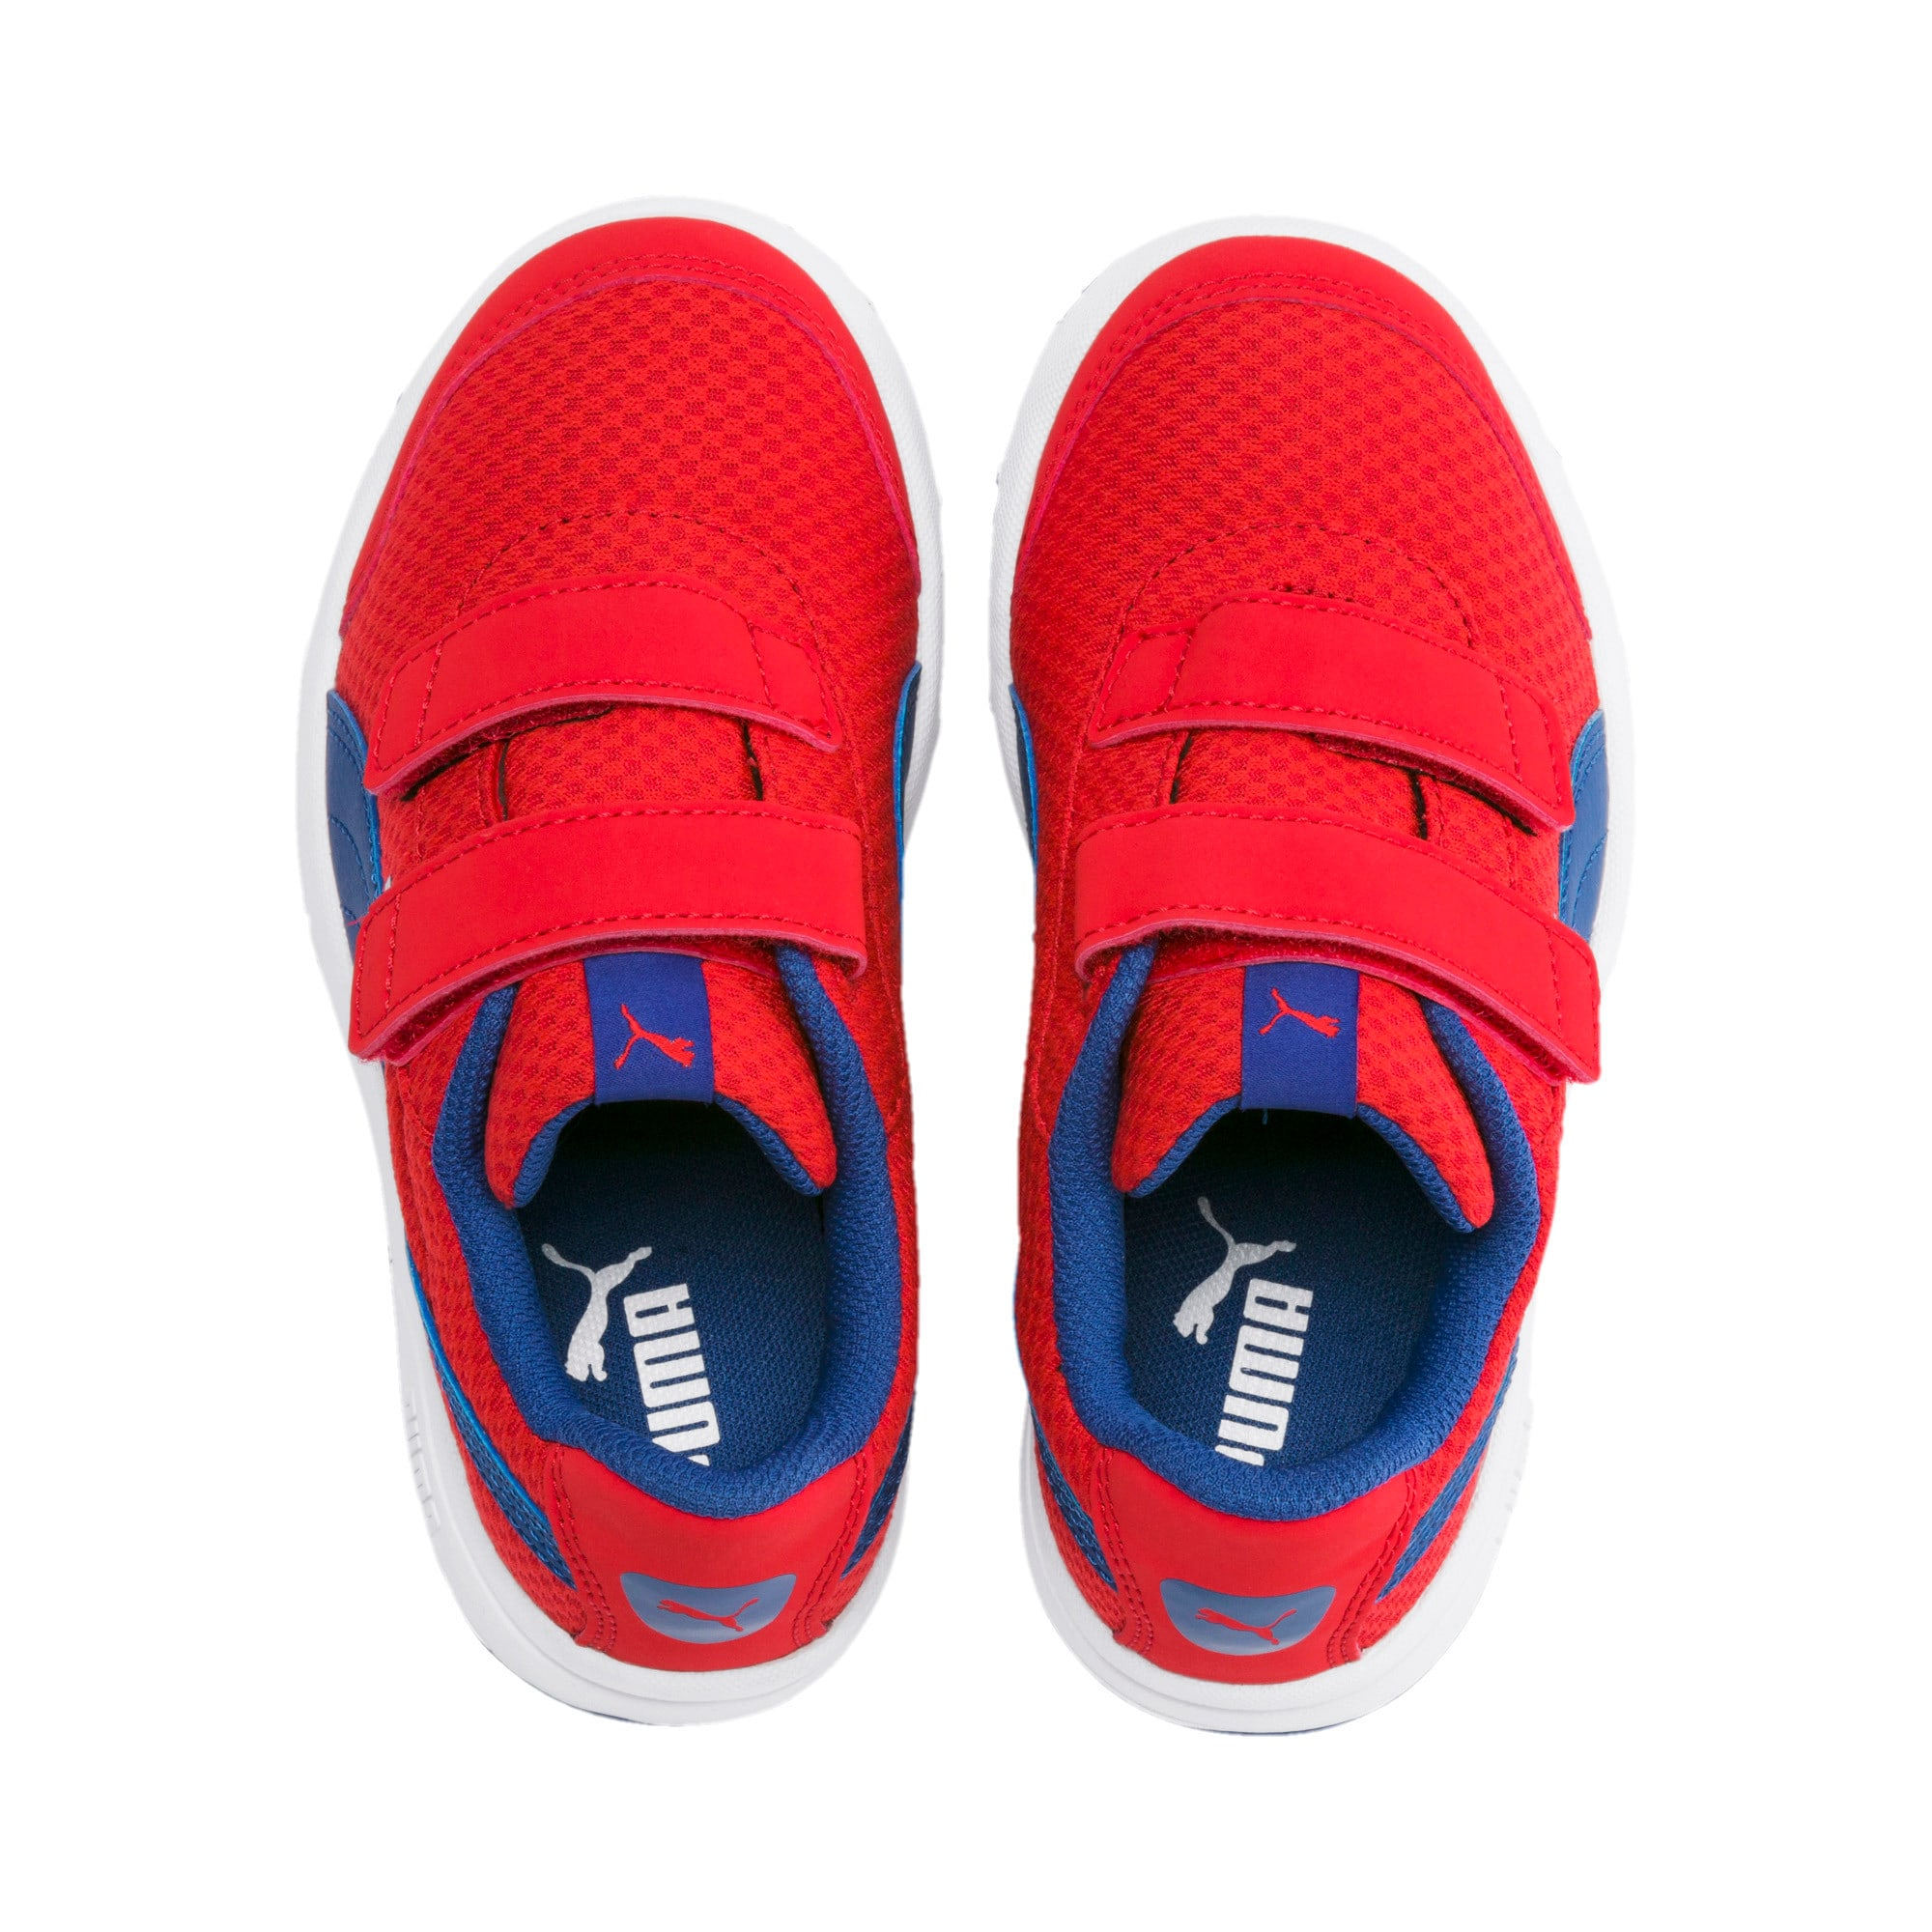 Thumbnail 2 of Stepfleex 2 Mesh VE V Kids' Trainers, Red-Galaxy Blue-White, medium-IND